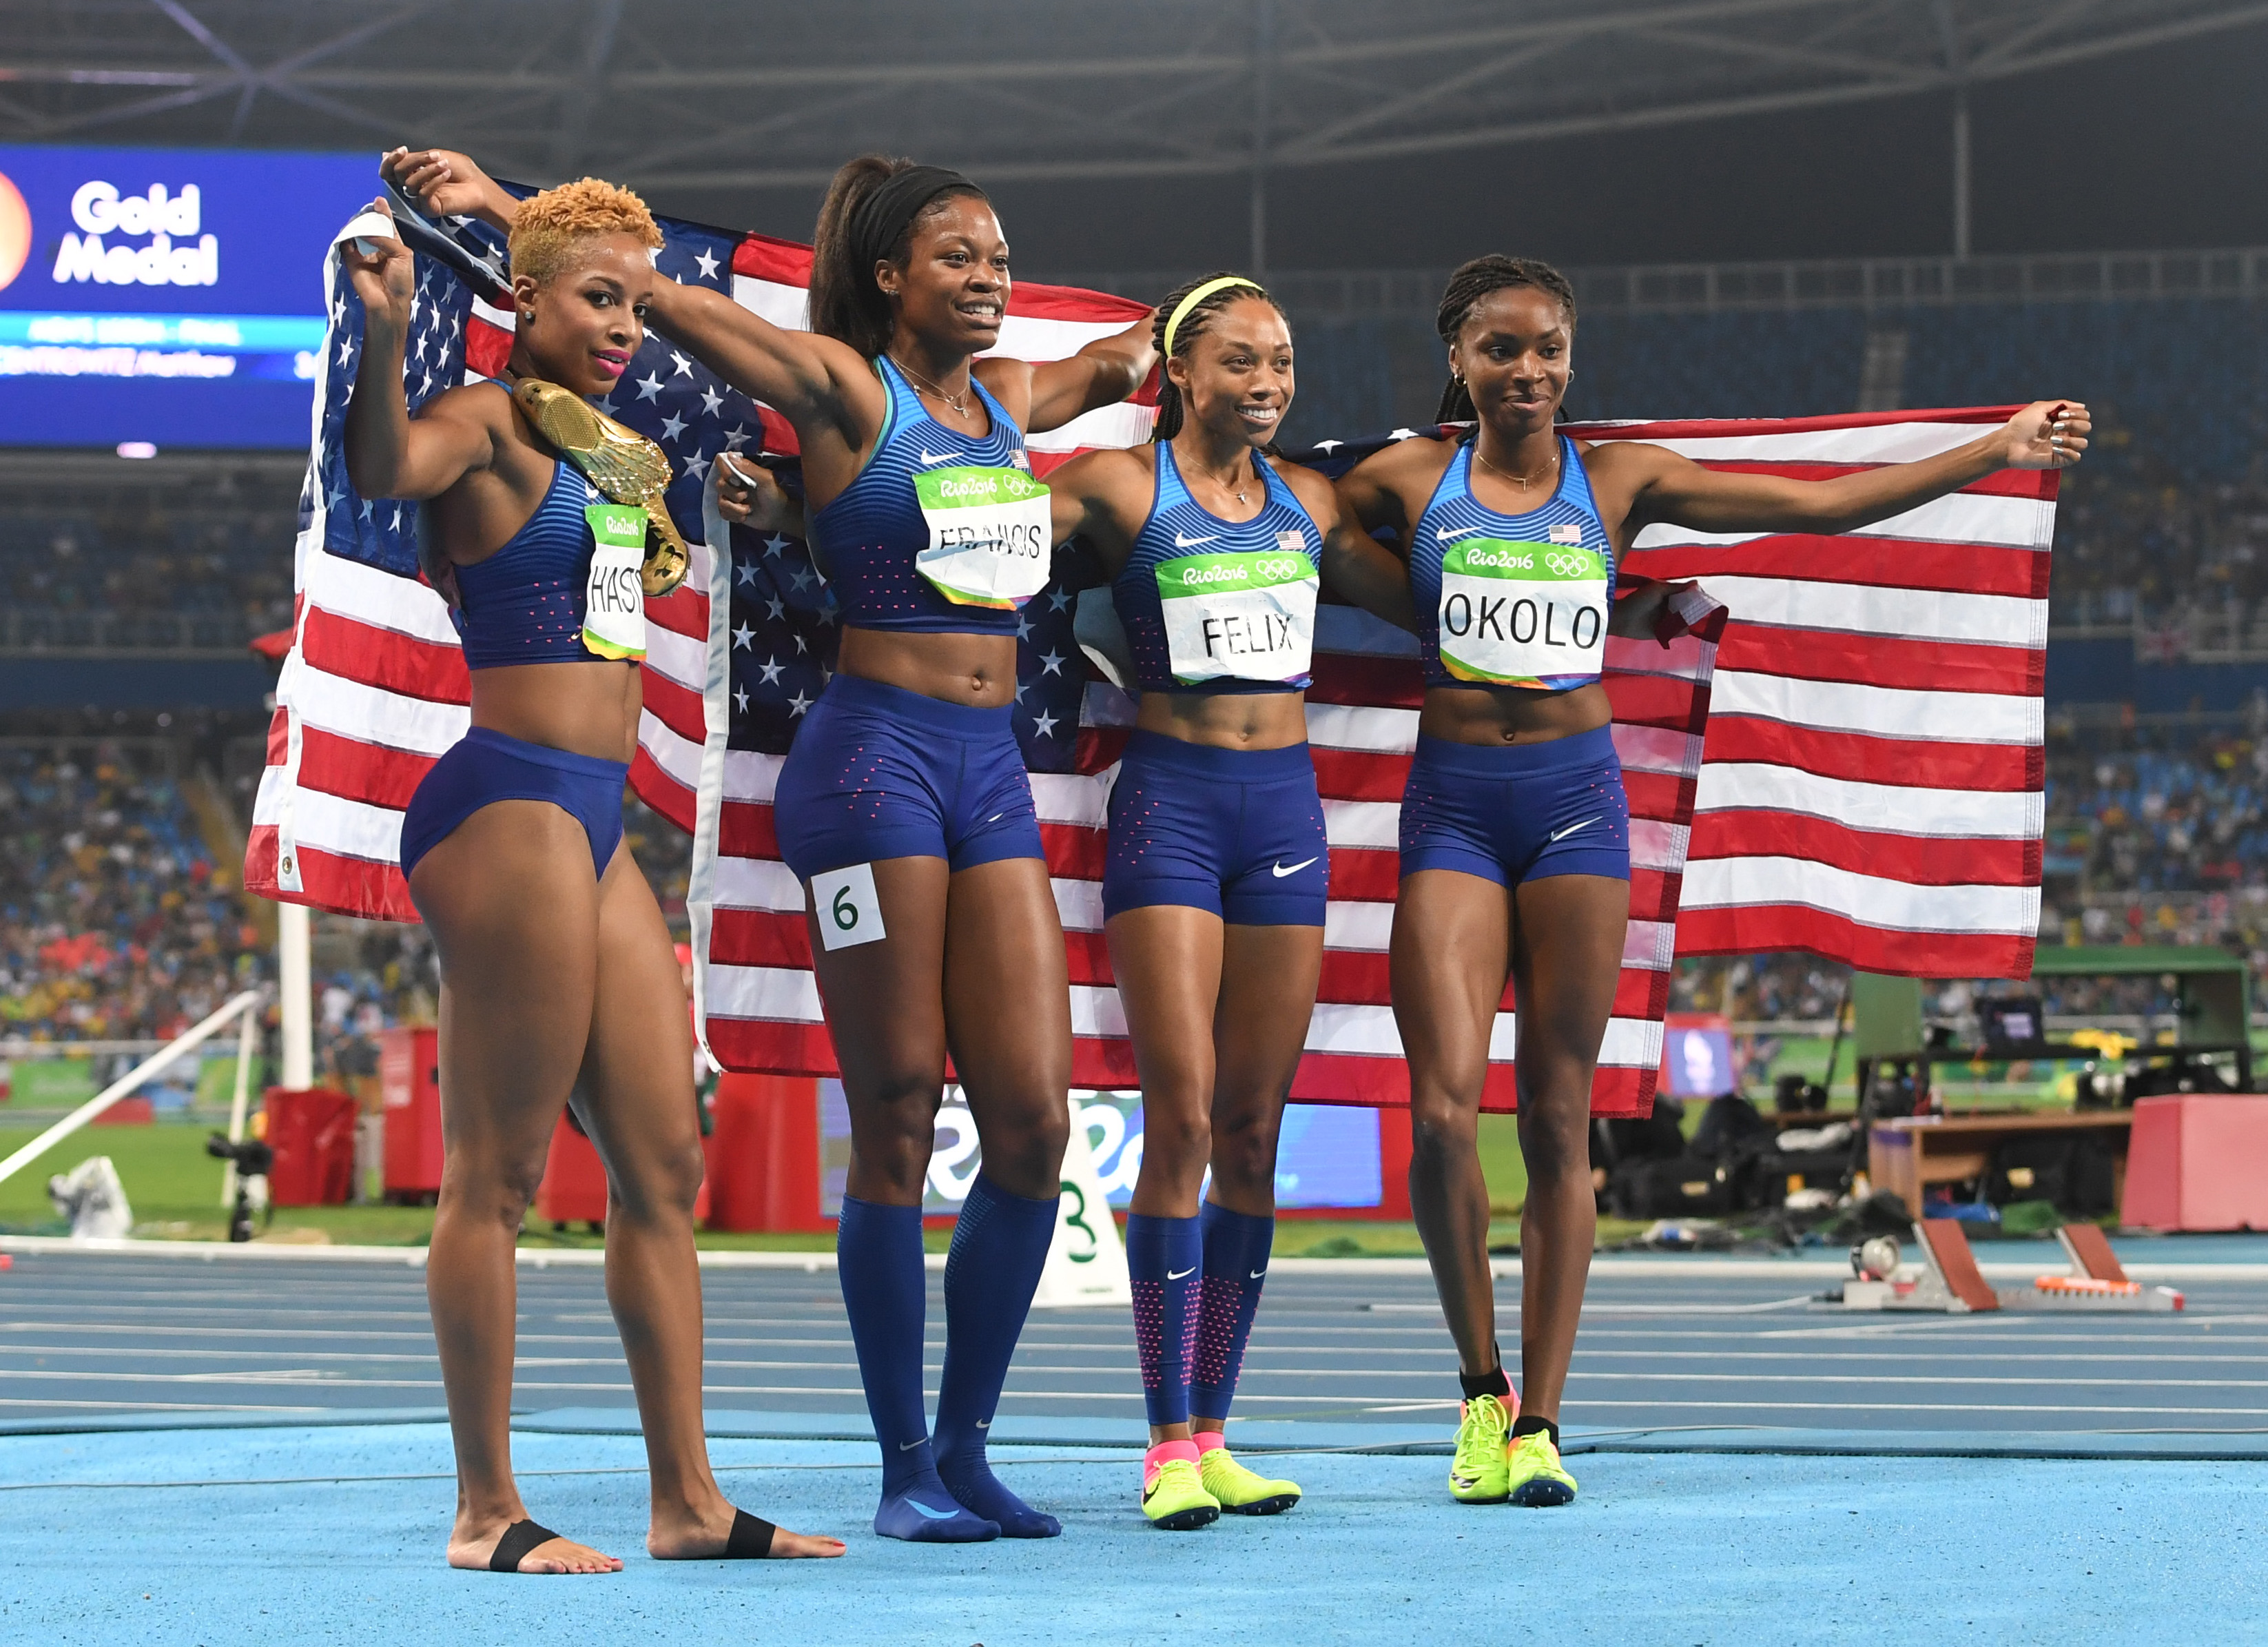 Forum on this topic: Esther Povitsky, allyson-felix-6-olympic-medals/